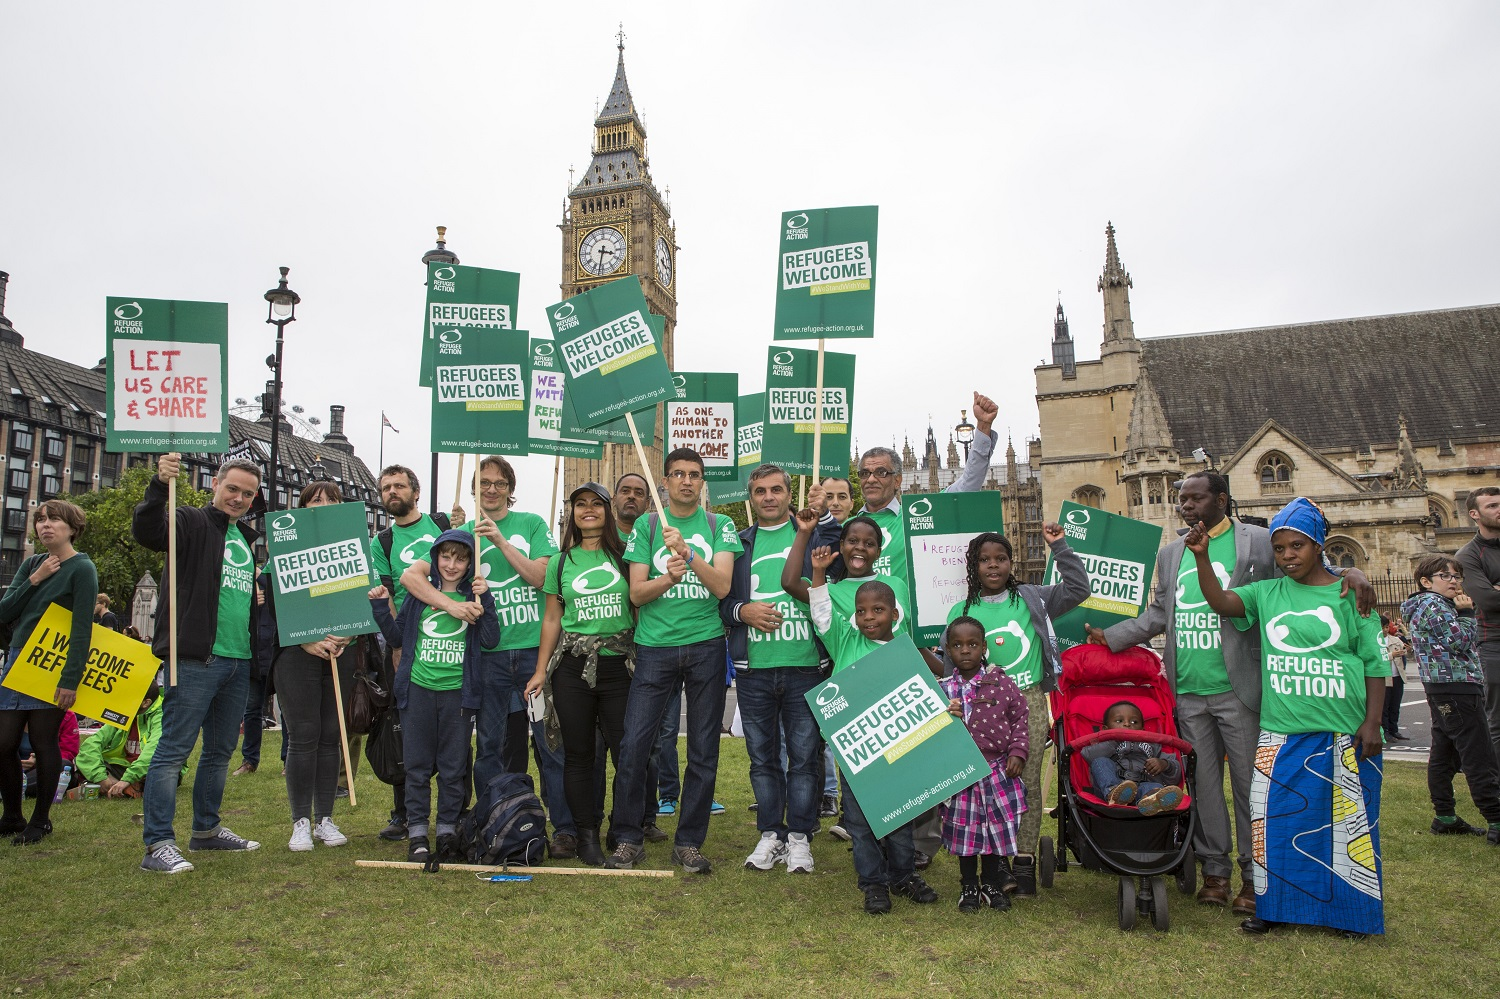 Wearing bright green t-shirts and carrying banners proclaiming messages of welcome and support for other refugees, members of Refugee Action's Refugee and Asylum Seeker Voice group stand in front of Big Ben at the London Refugees Welcome March in September 2016.